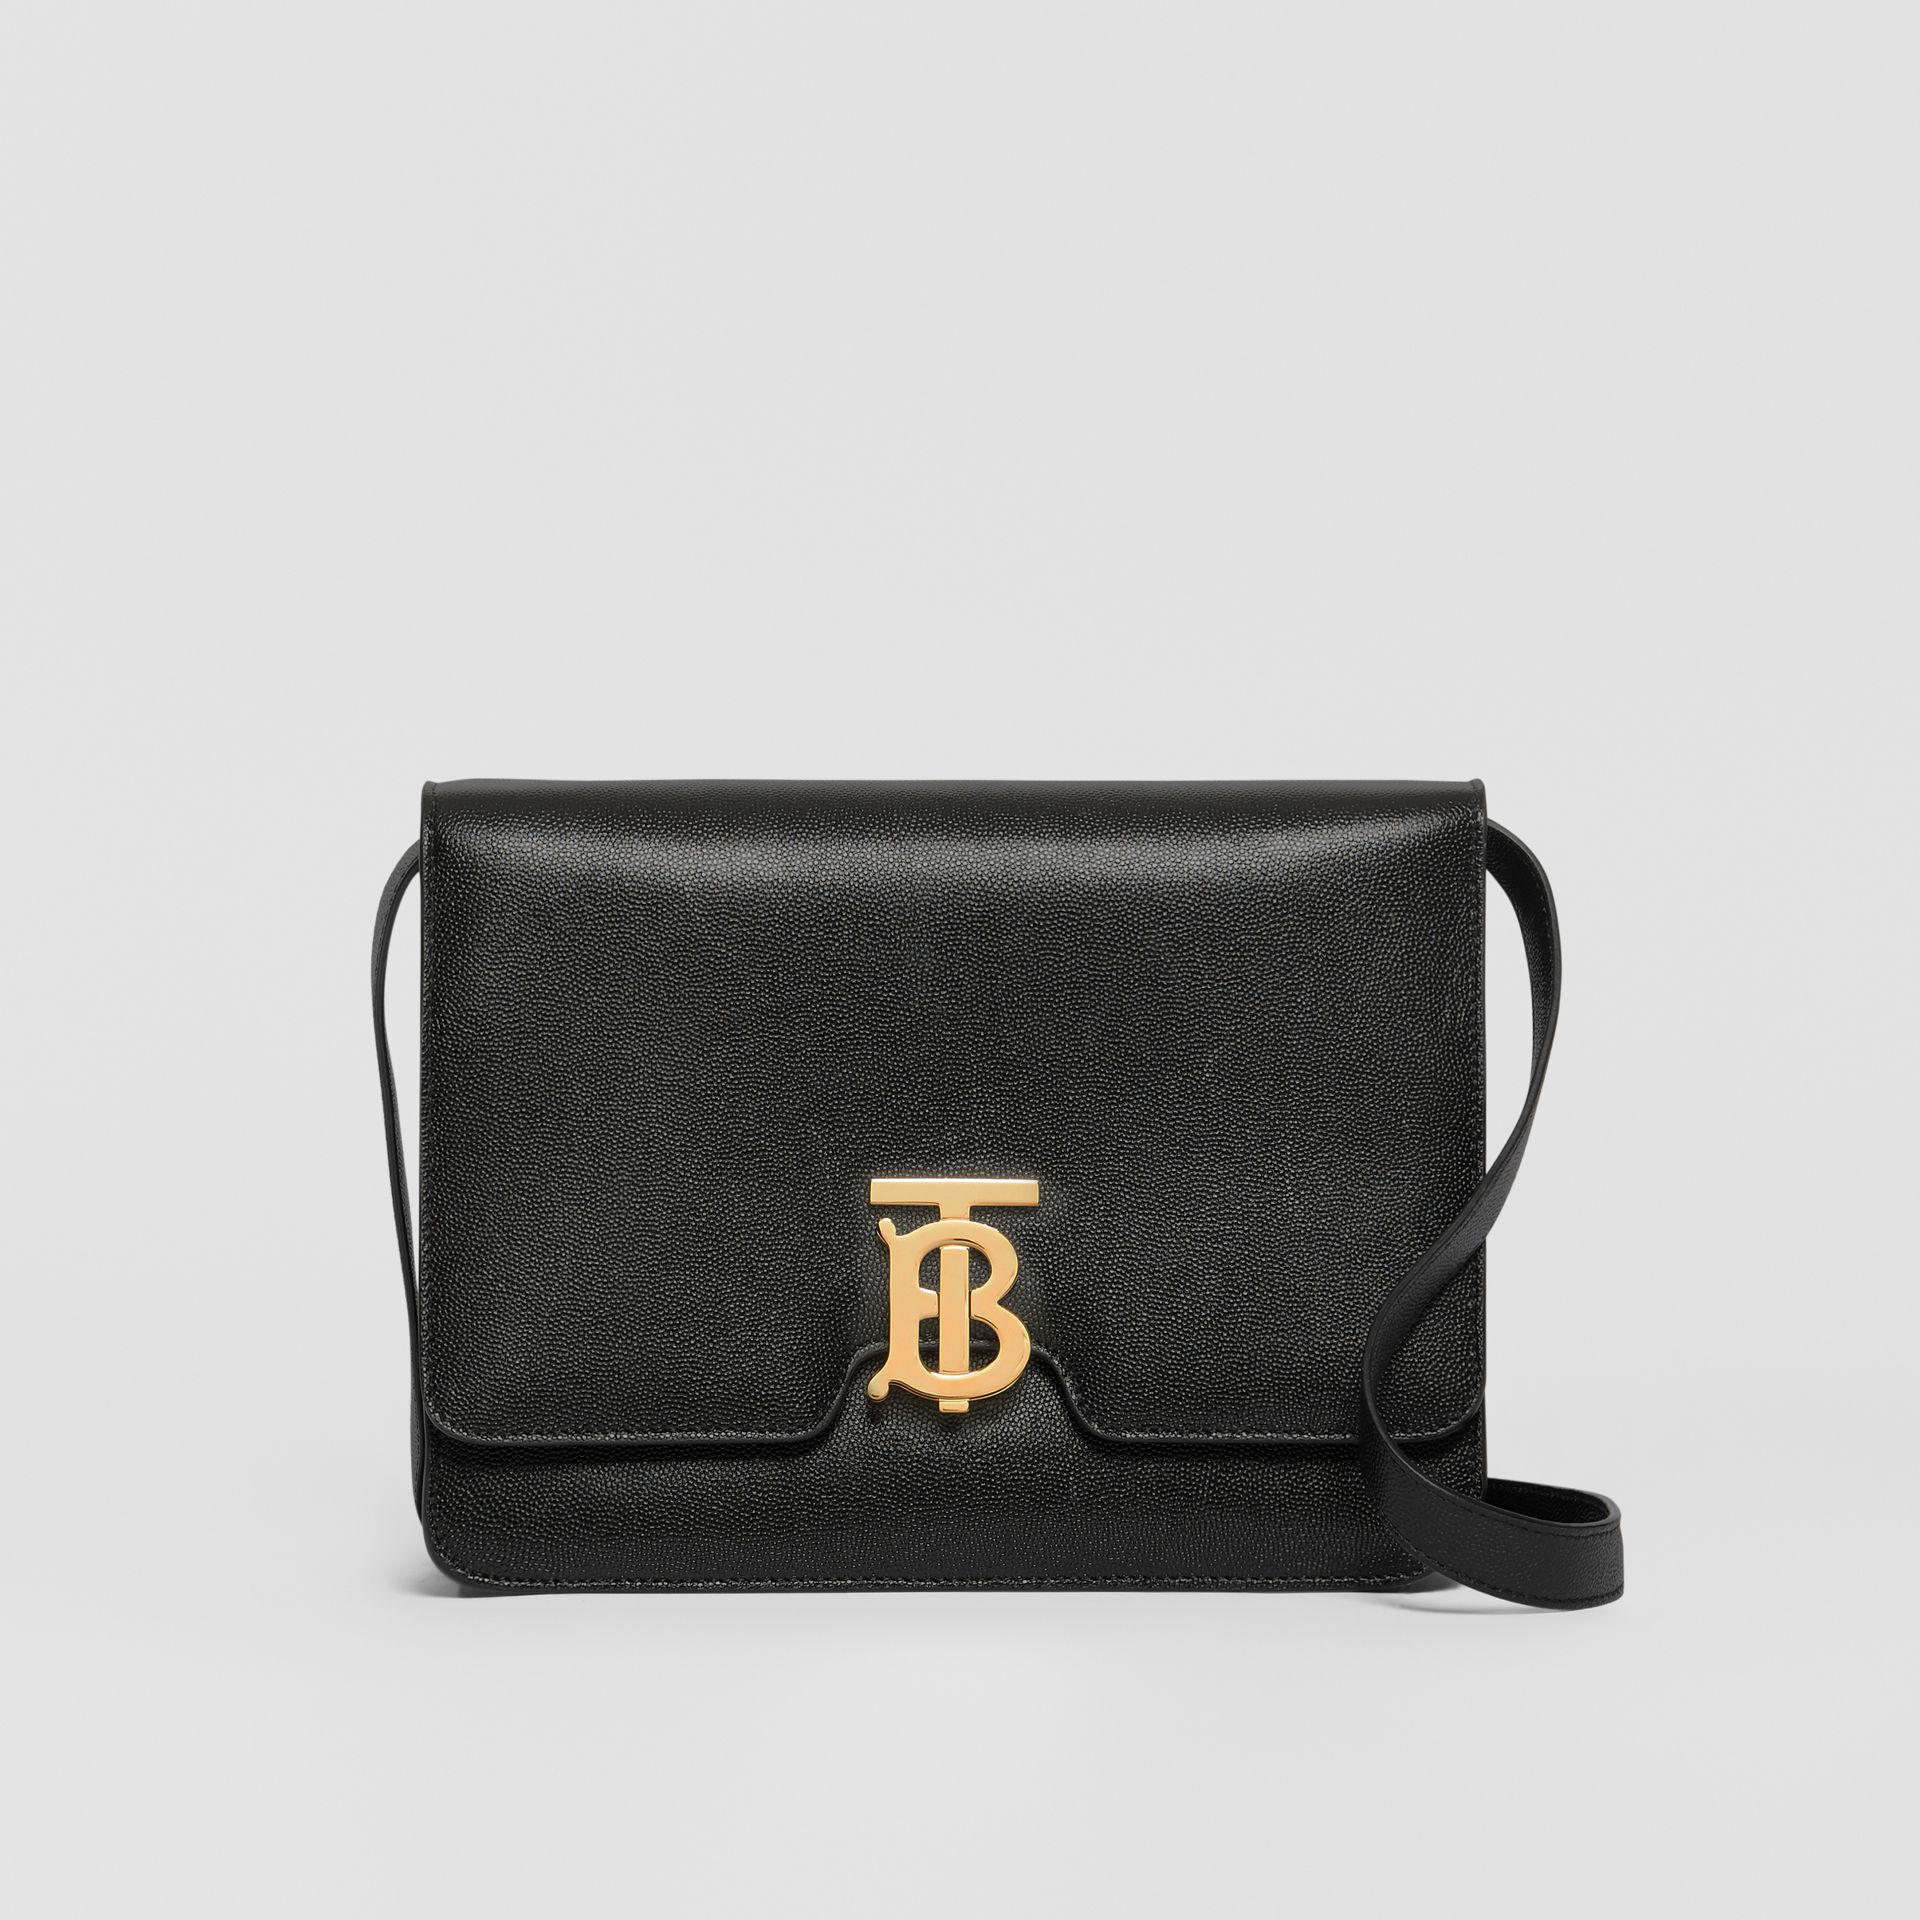 Medium Grainy Leather TB Bag in Black - Women | Burberry United States - gallery image 0